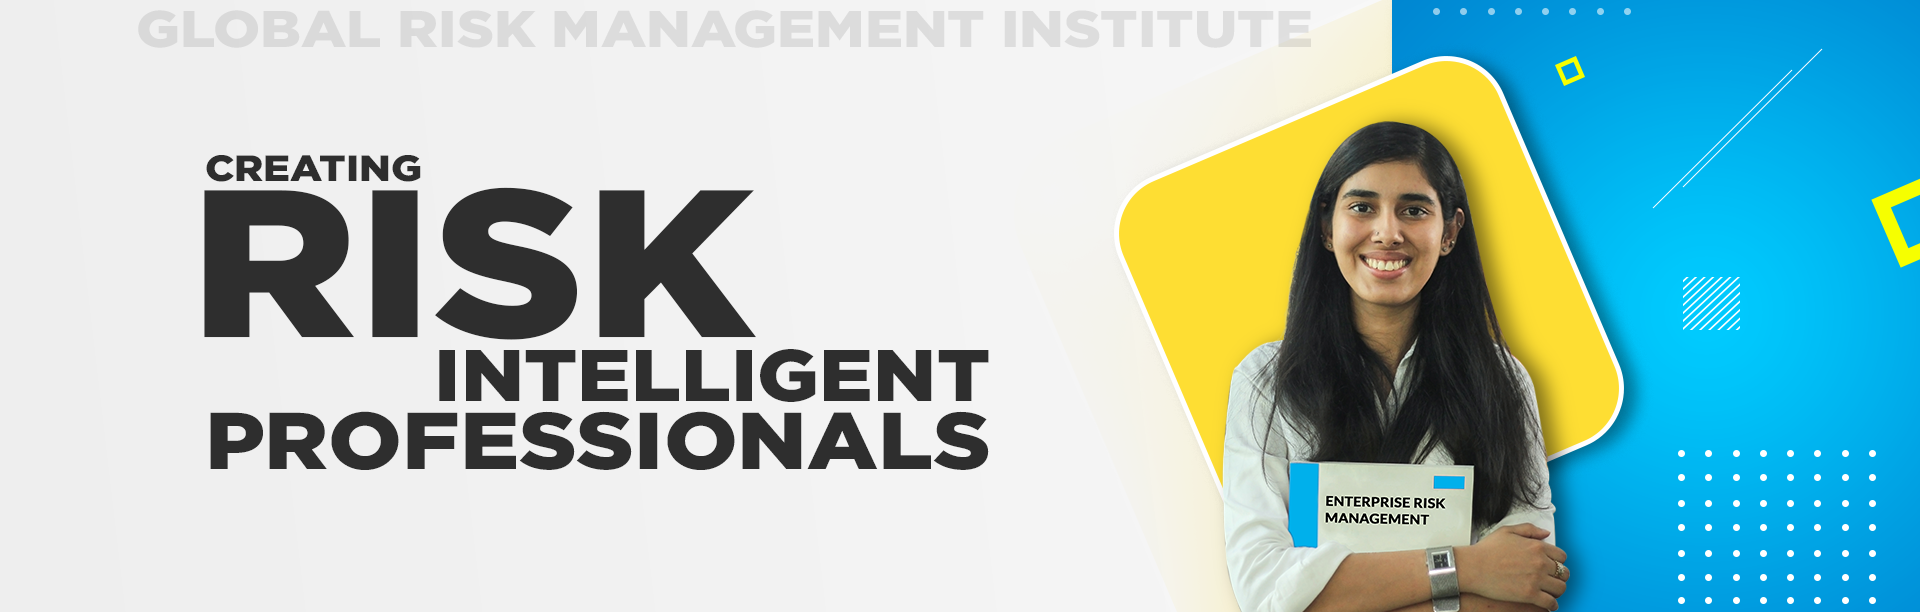 Global Risk Management Institute-Risk Management course in India (PGDRM)